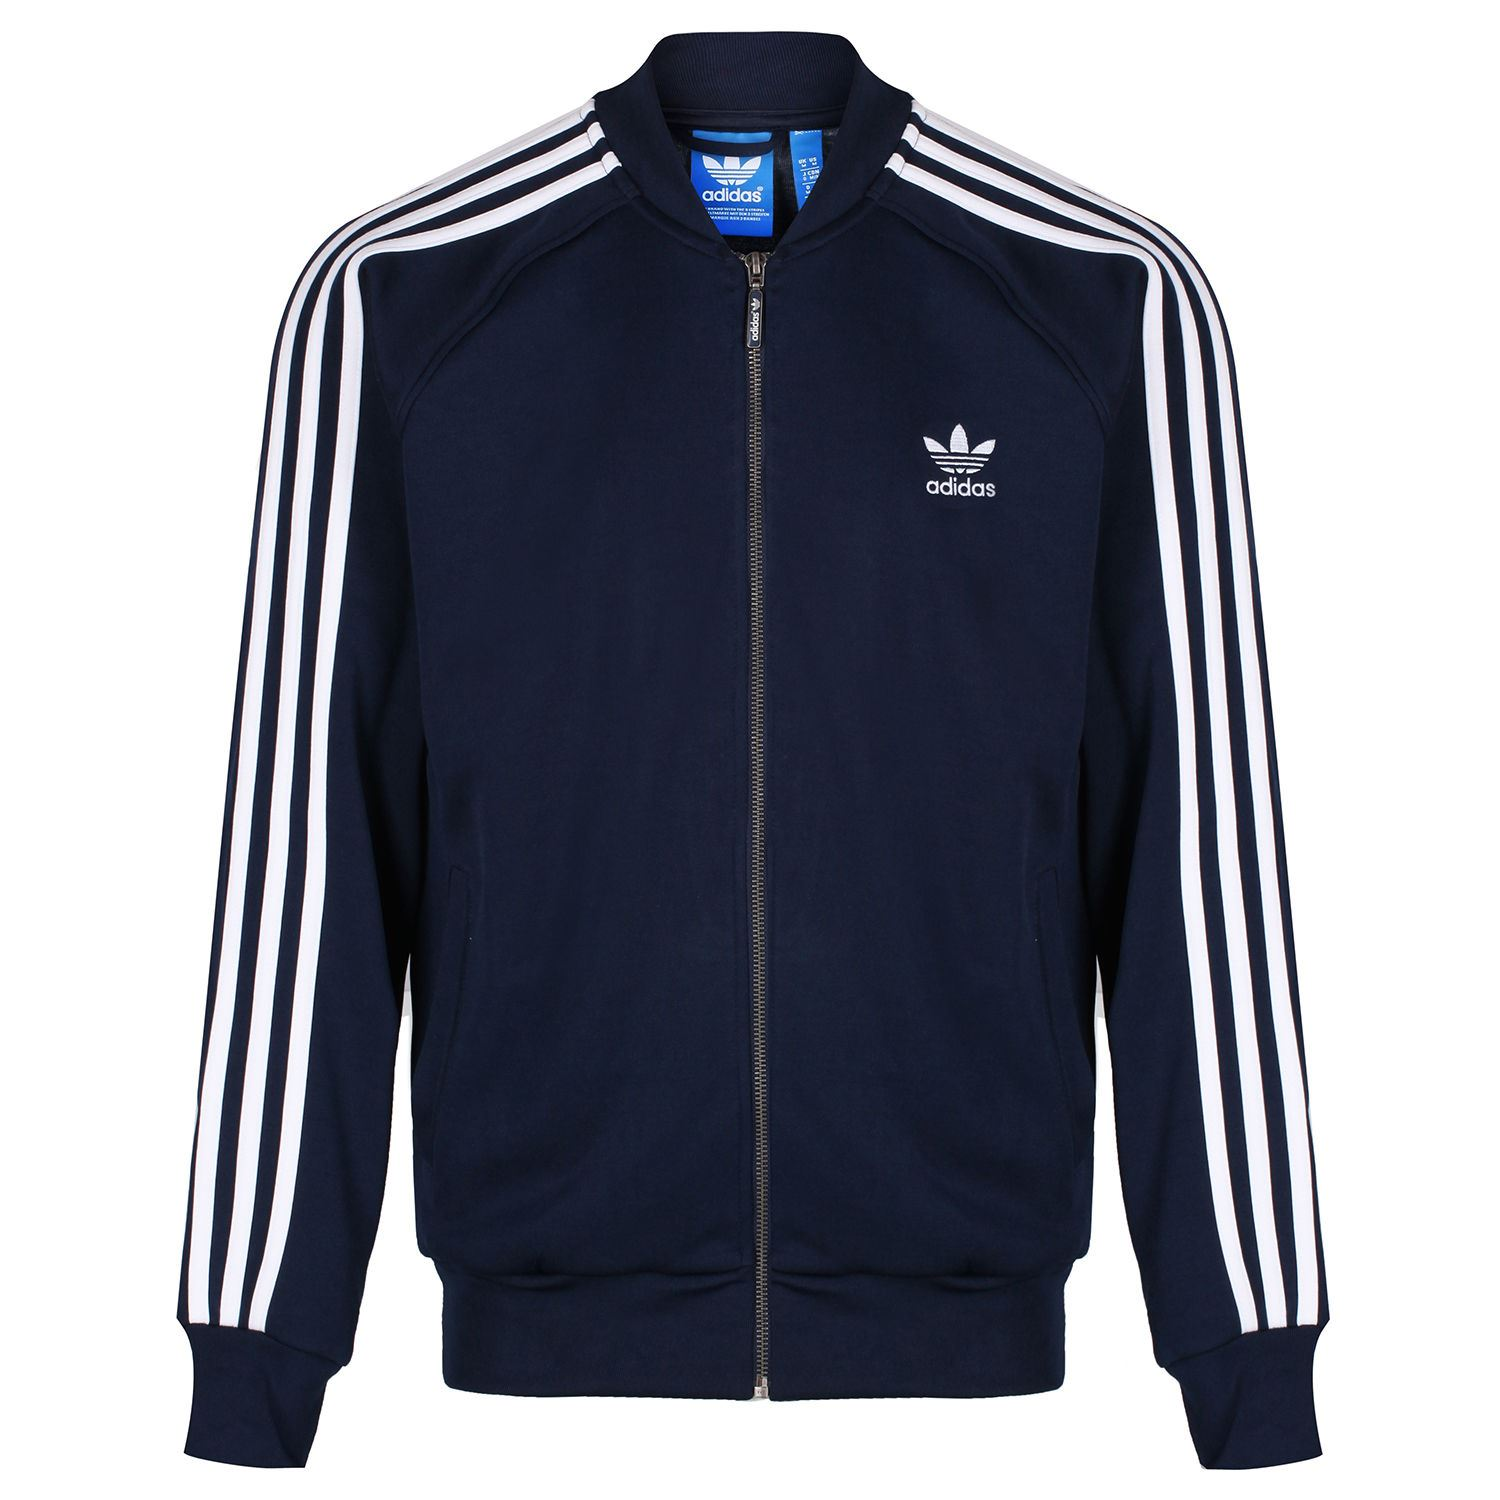 Details about adidas ORIGINALS MEN'S SUPERSTAR TRACK TOP JACKET NAVY RETRO VINTAGE TREFOIL NEW